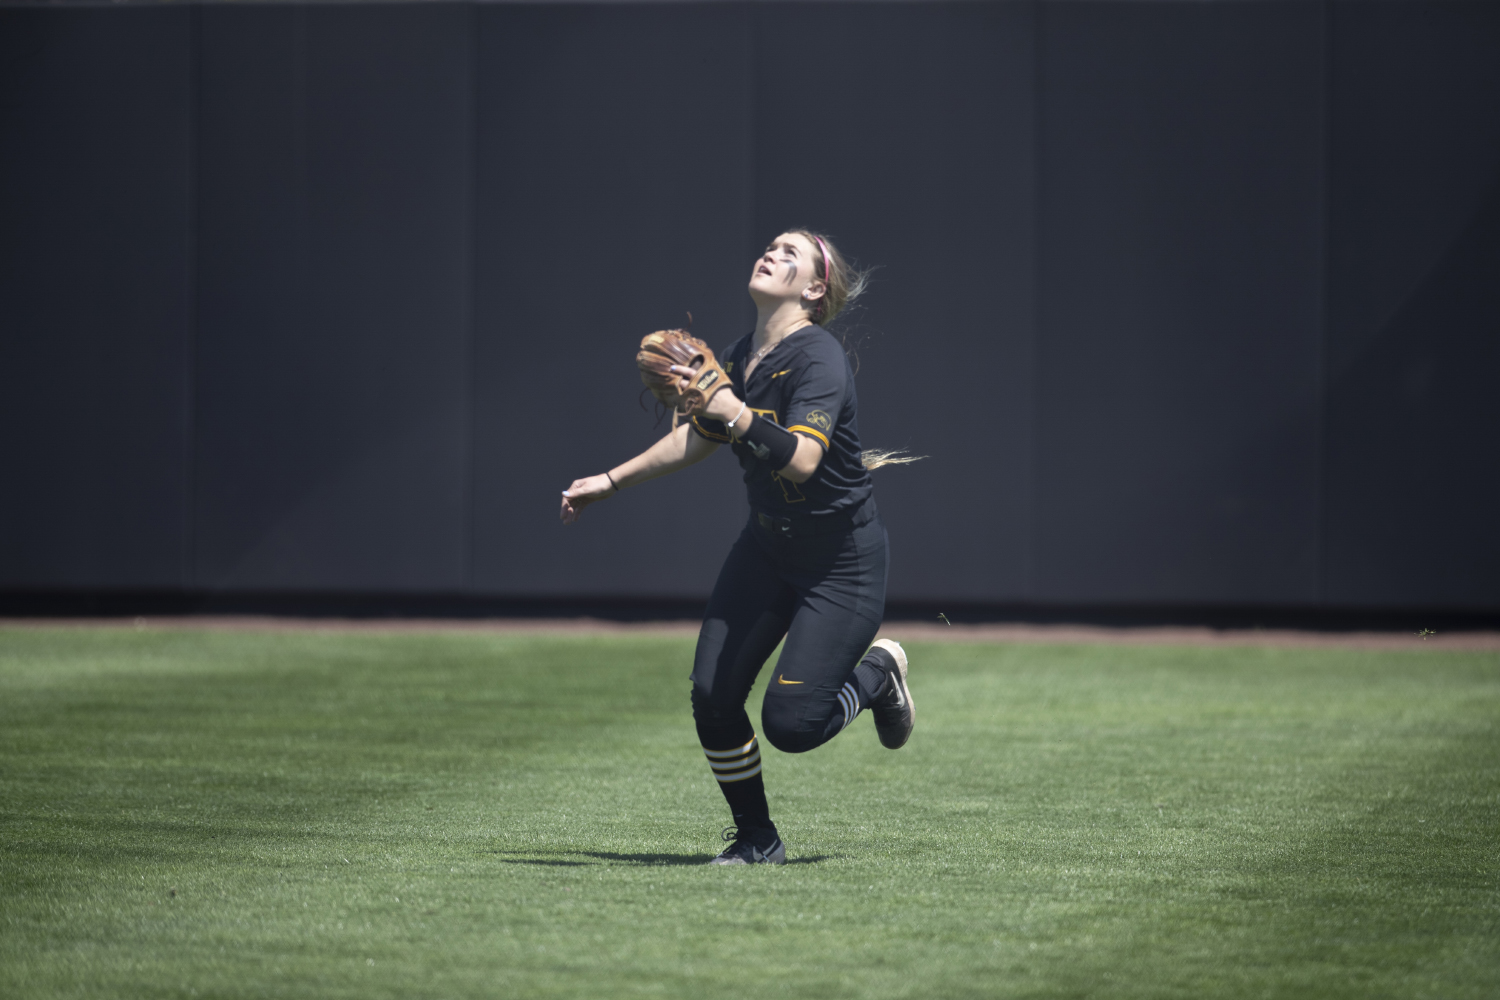 Iowa infielder Cameron Cecil runs before catching the ball during the game against Ohio State at the Bob Pearl Softball field on Saturday, May 4, 2019. The Hawkeyes were defeated by the Buckeyes 0-10.